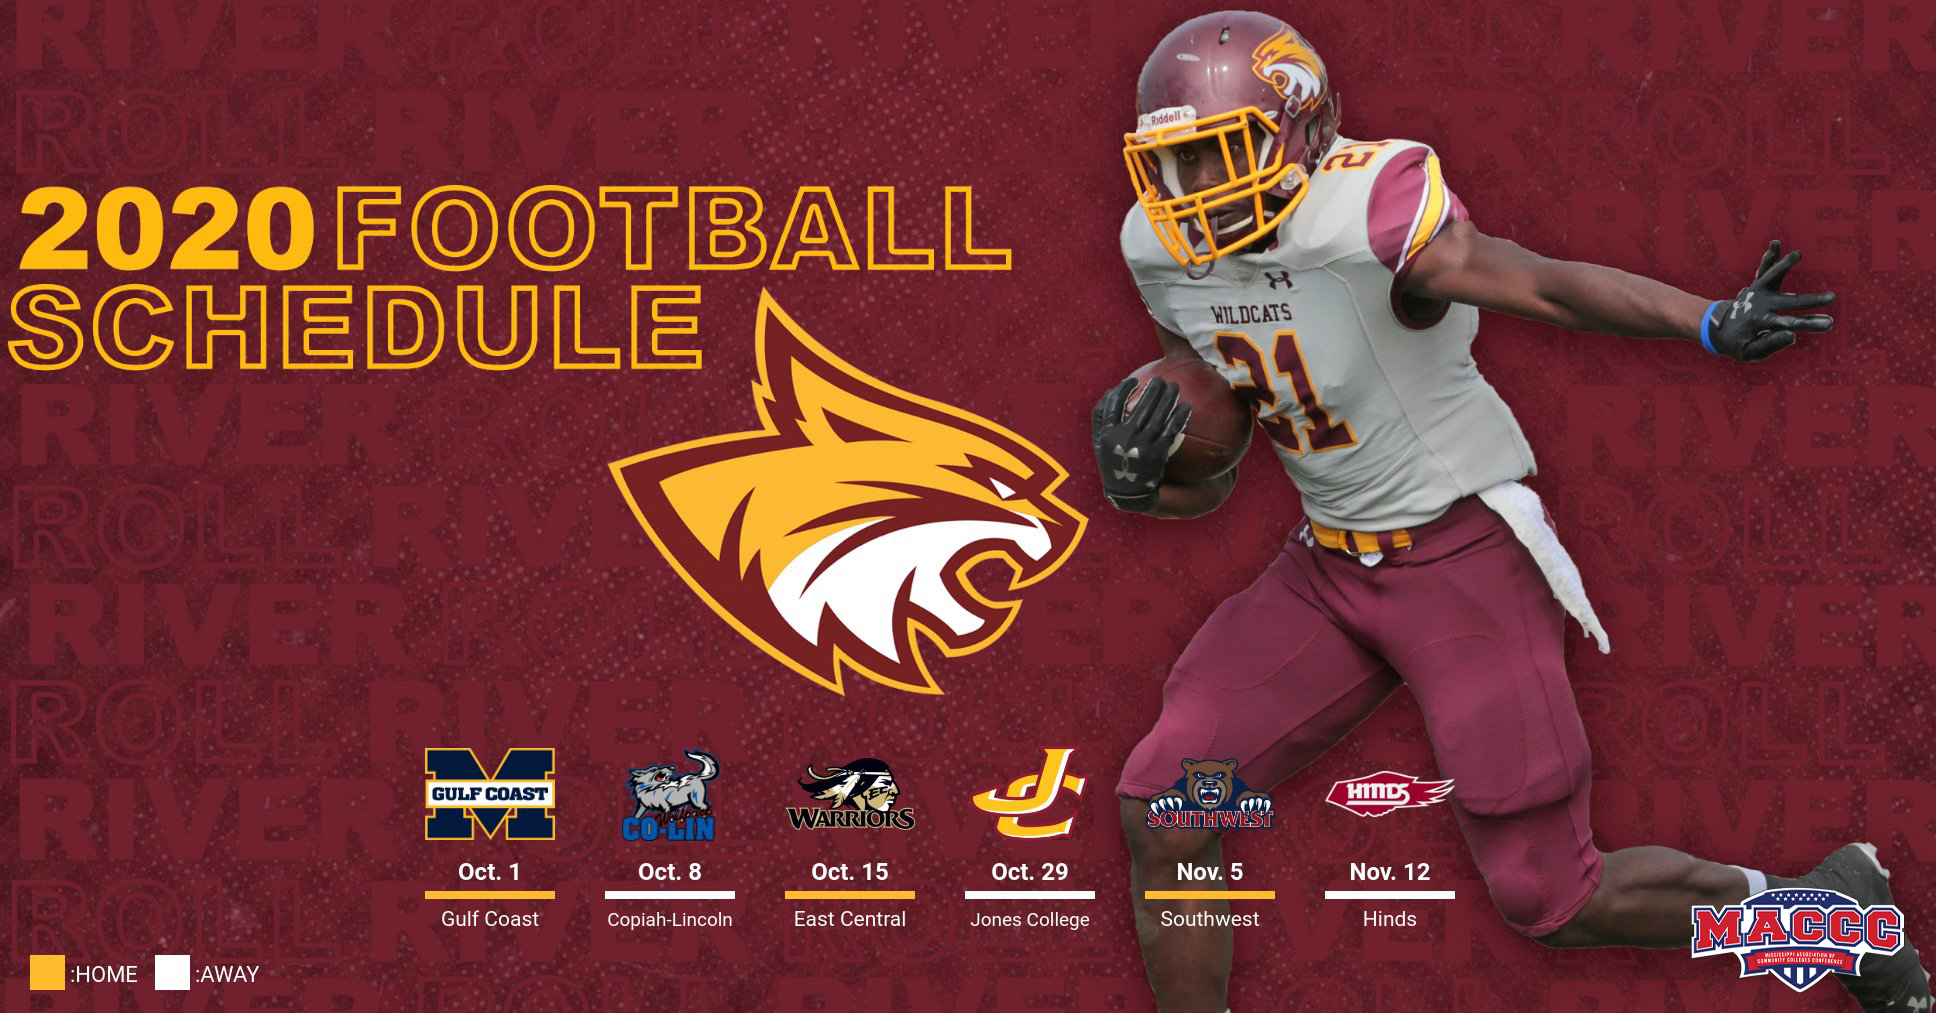 Pearl River releases 2020 football schedule